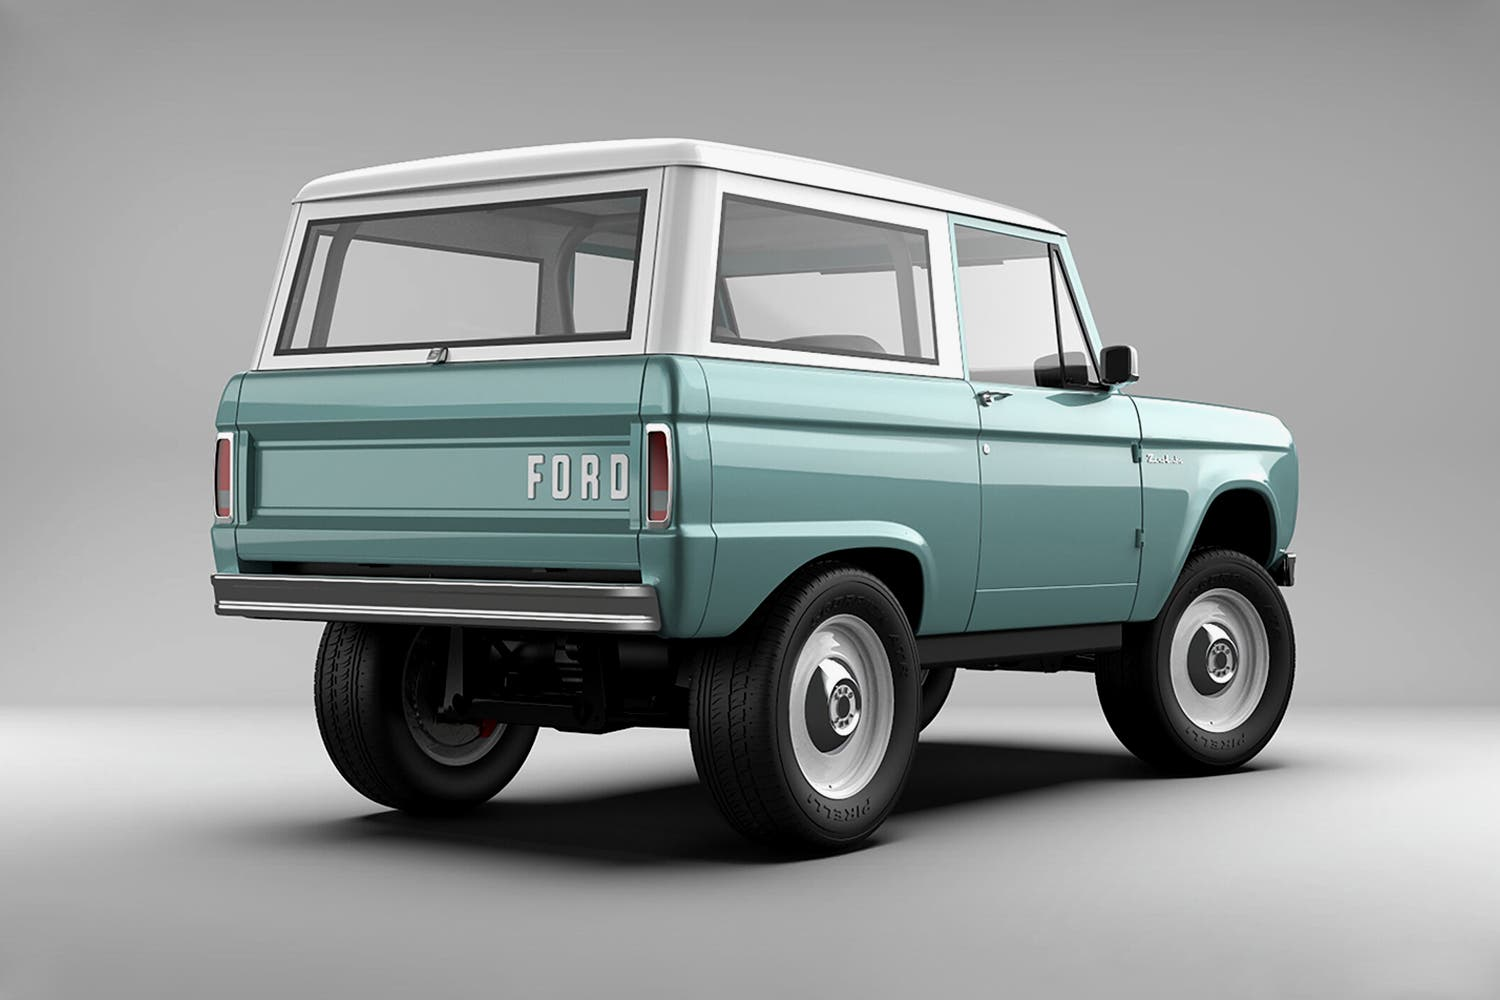 Ford-Bronco-electrico-ZeroLabs-restomod-02